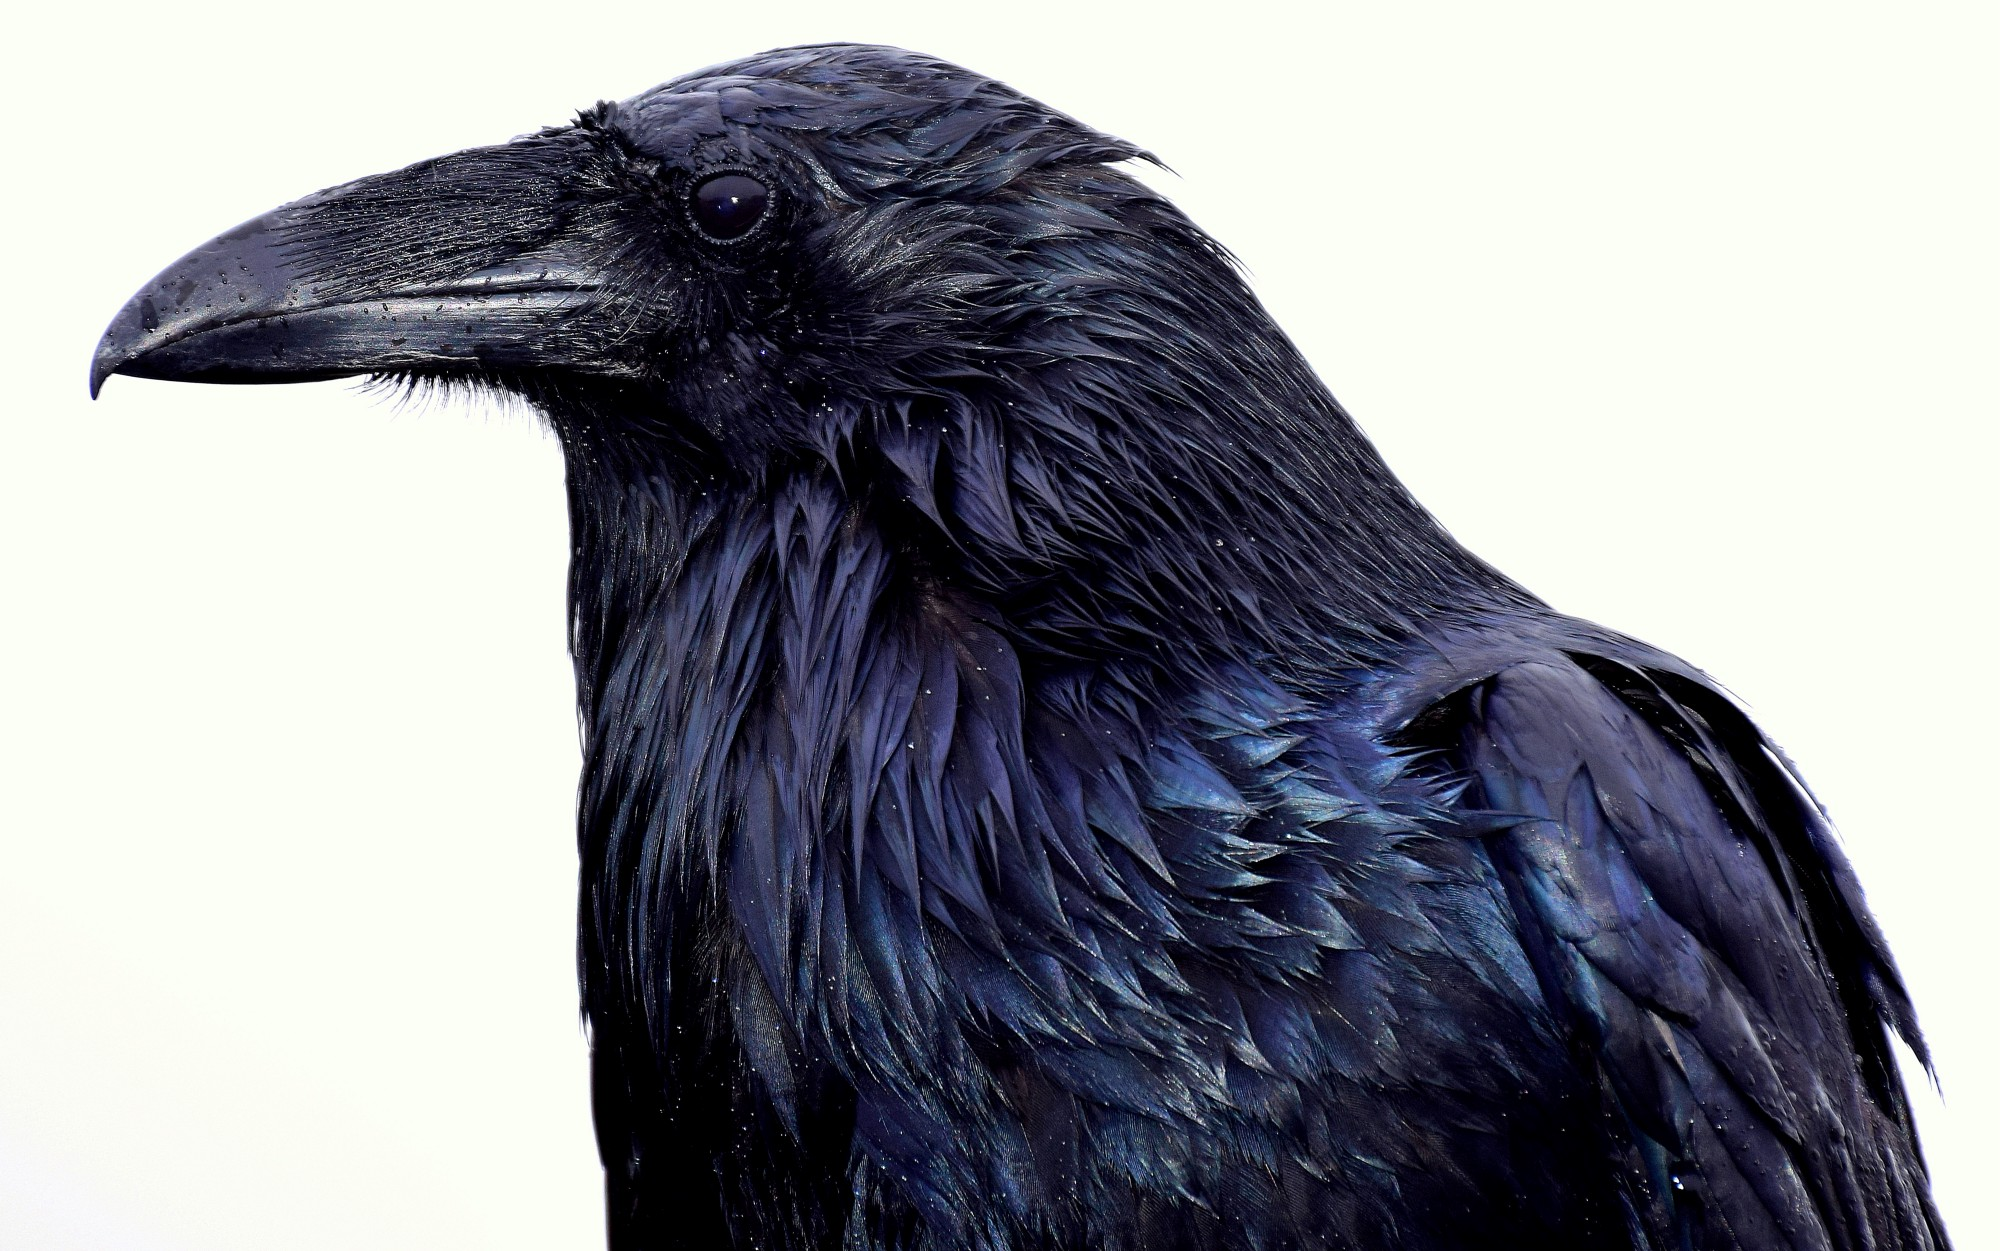 A frightening crow